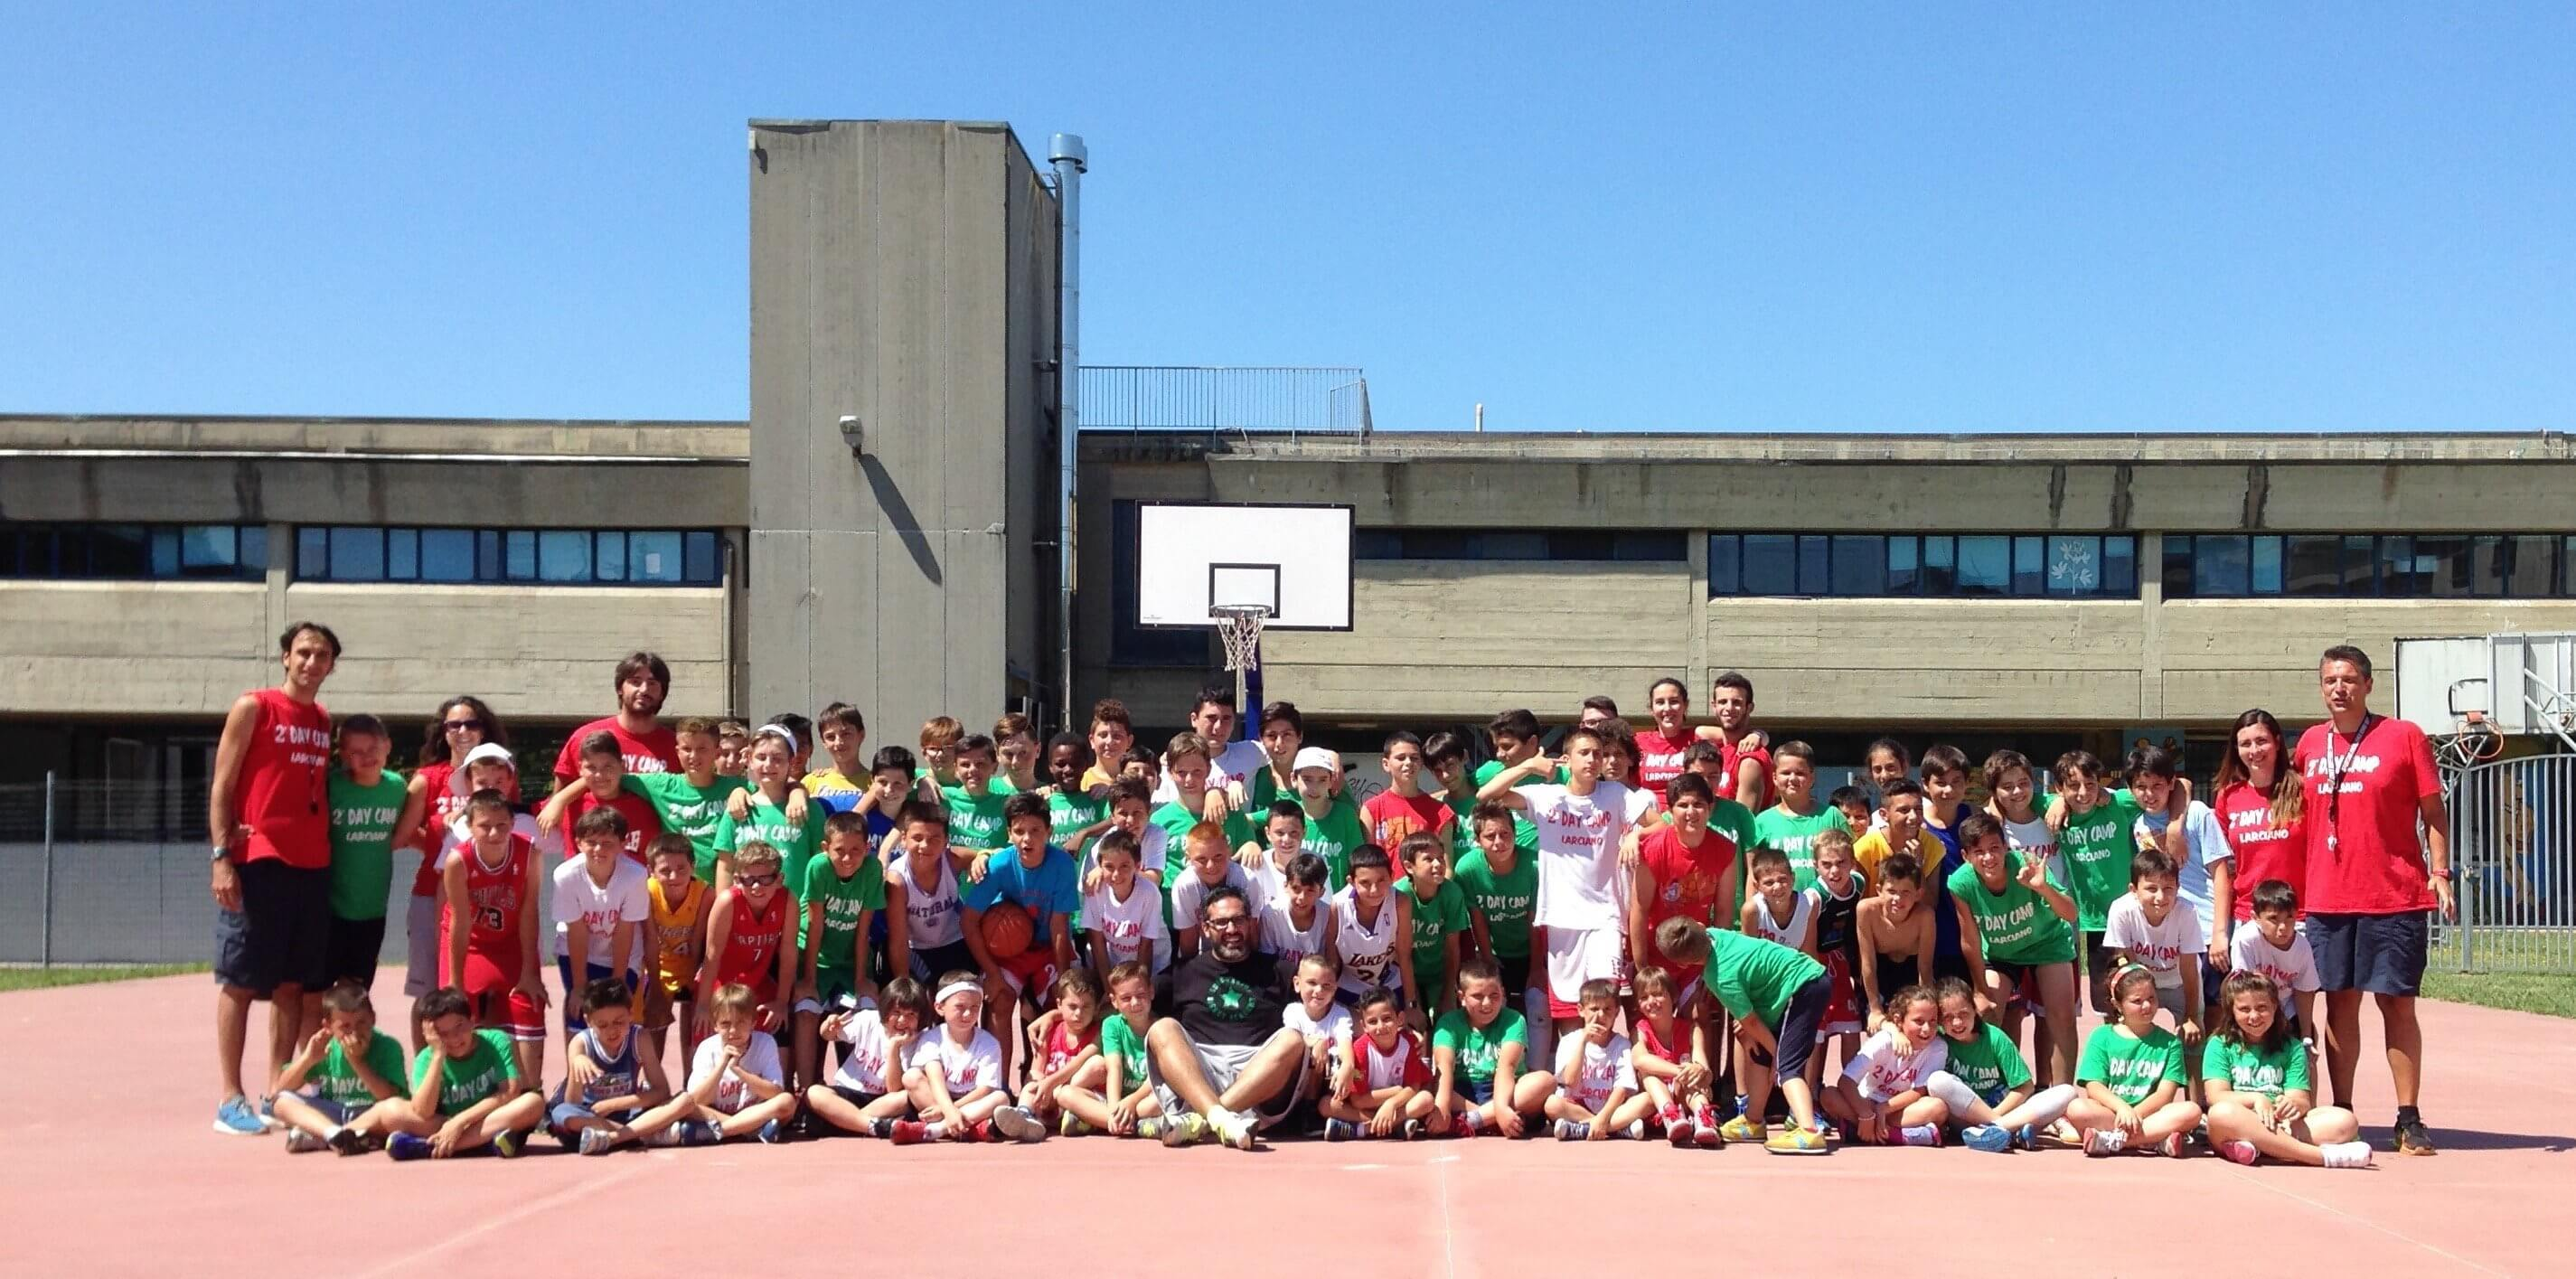 Tutto pronto per il 3° Day Camp a Larciano